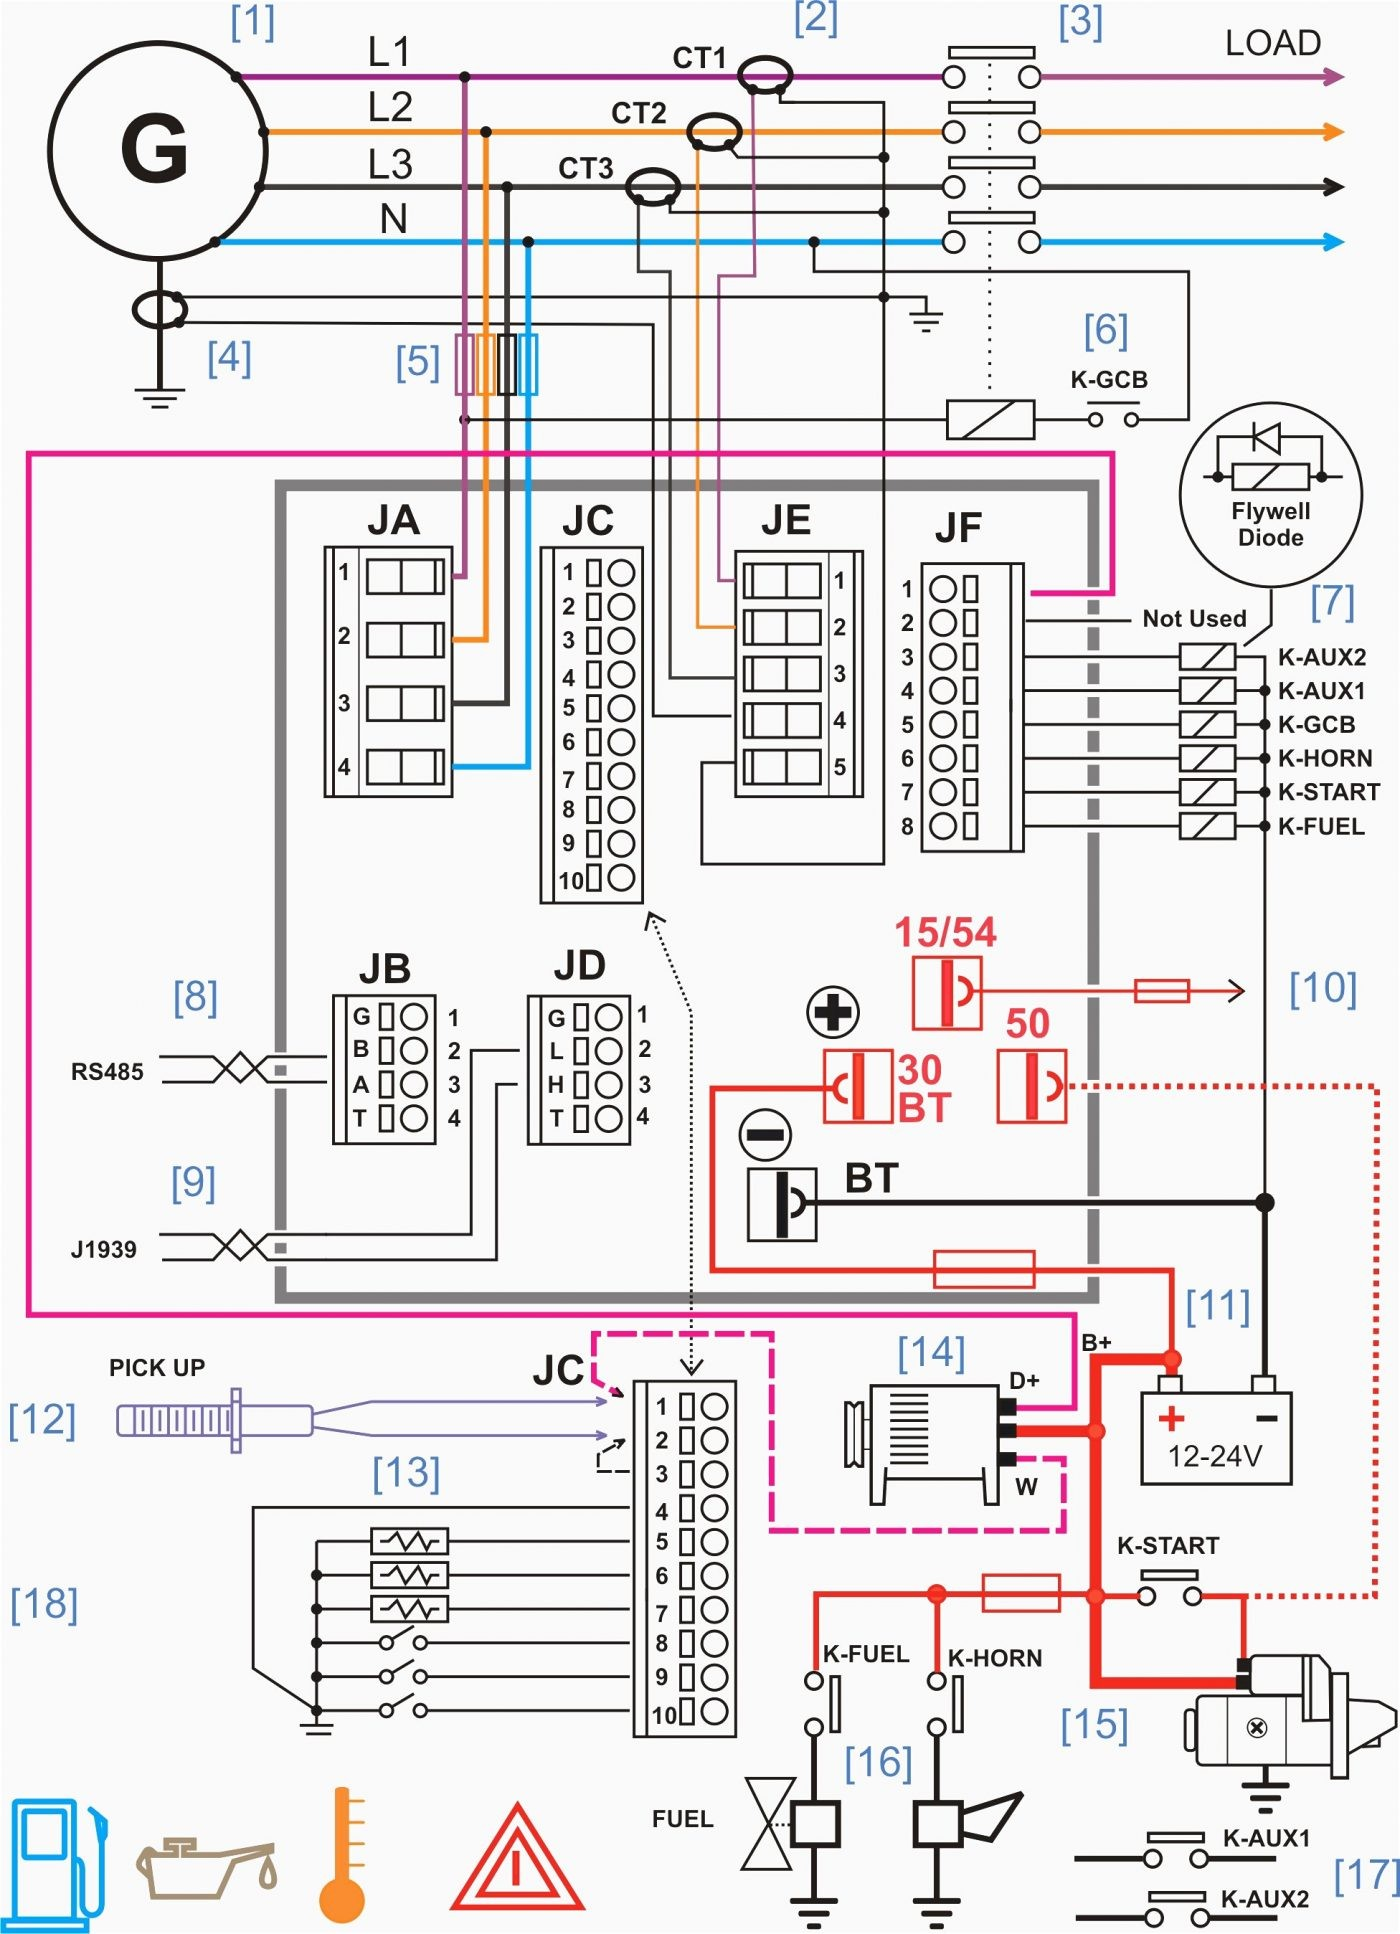 Dodge Stratus Wiring Diagram 1934 Dodge Wiring Diagrams Wiring Diagram Of Dodge Stratus Wiring Diagram